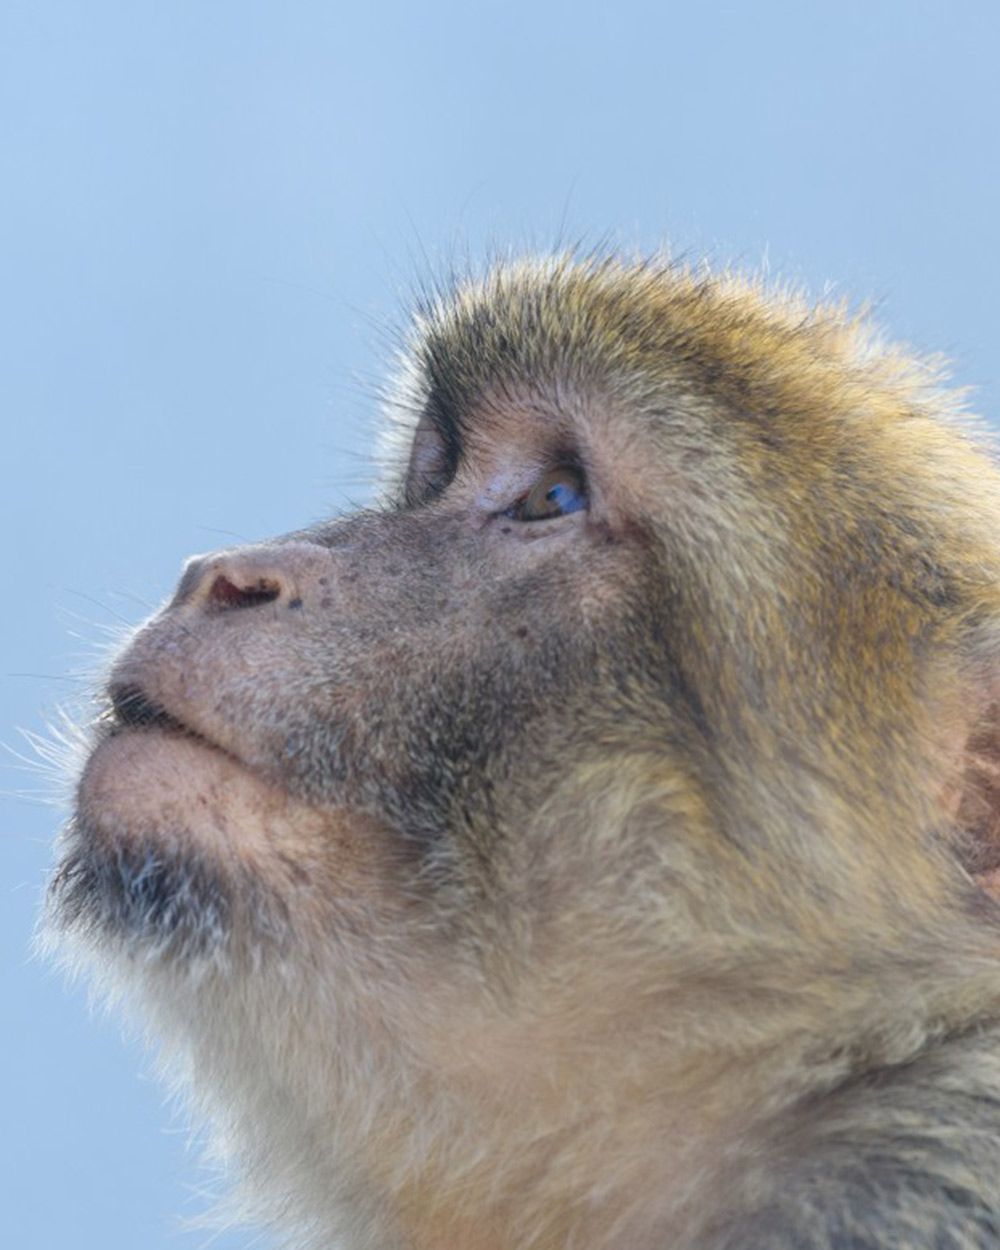 Macaques are used for testing vaccines because their biology is so similar to that of humans.